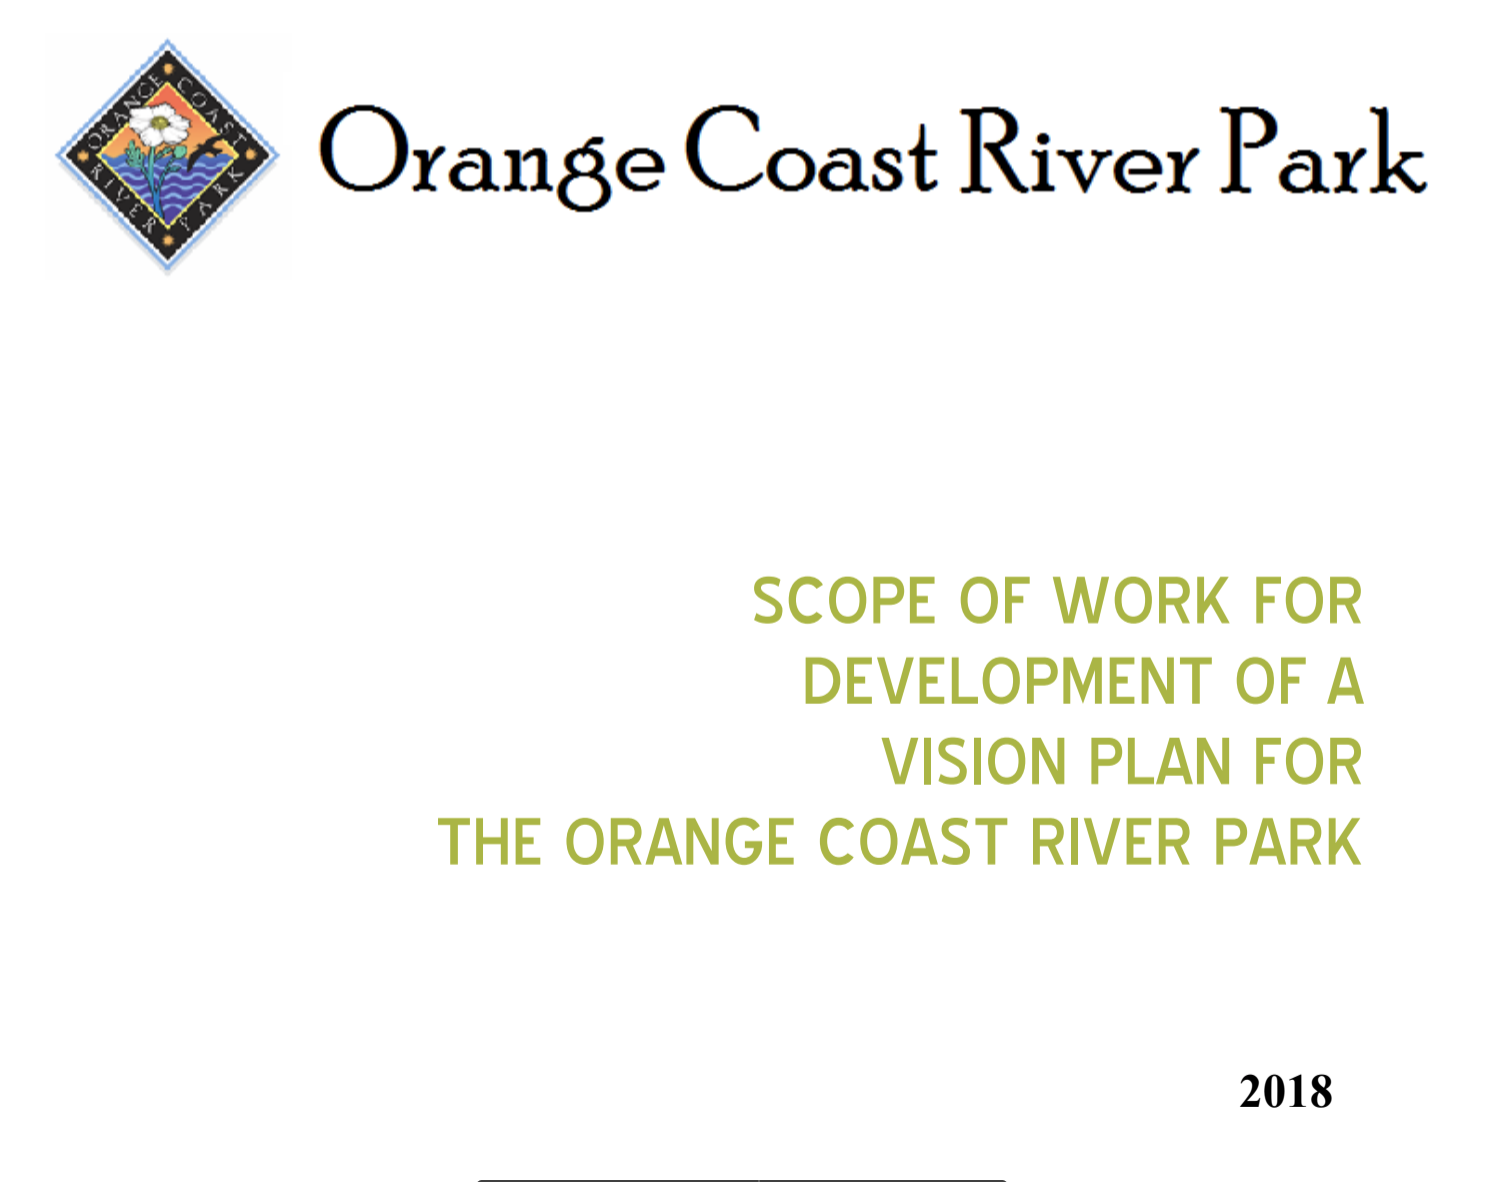 2019/20 Projects - The OCRP Board is working diligently to expand the cooperative management and planning of the parks with our 2019/20 projects and we are currently raising funds for an updated and comprehensive Vision Plan. To view or download the park's Scope of Work, shown to the right, please click here.